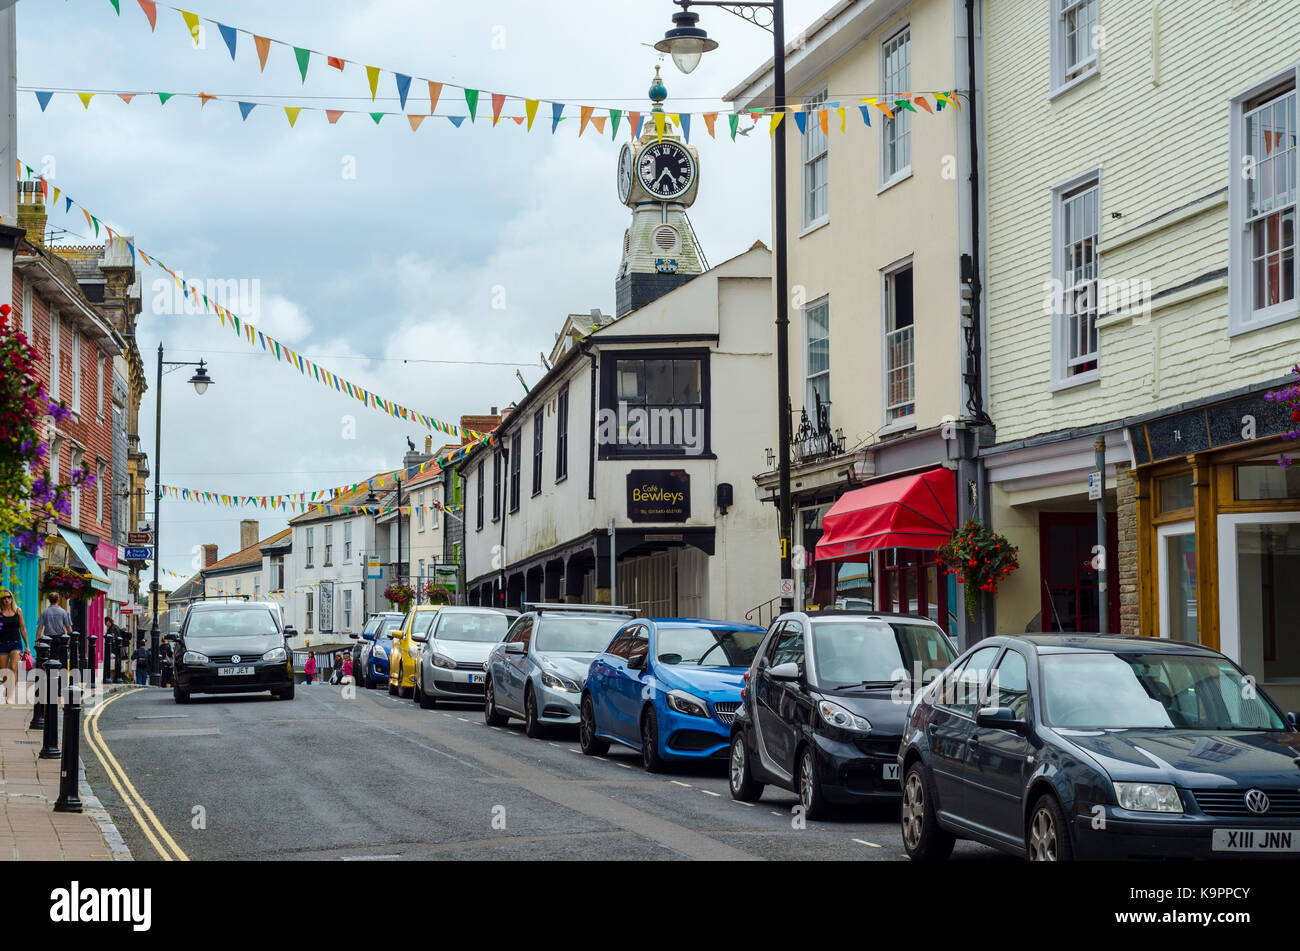 Fore Street and clock tower, Kingsbridge market town in South Hams, Devon, England, UK - Stock Image